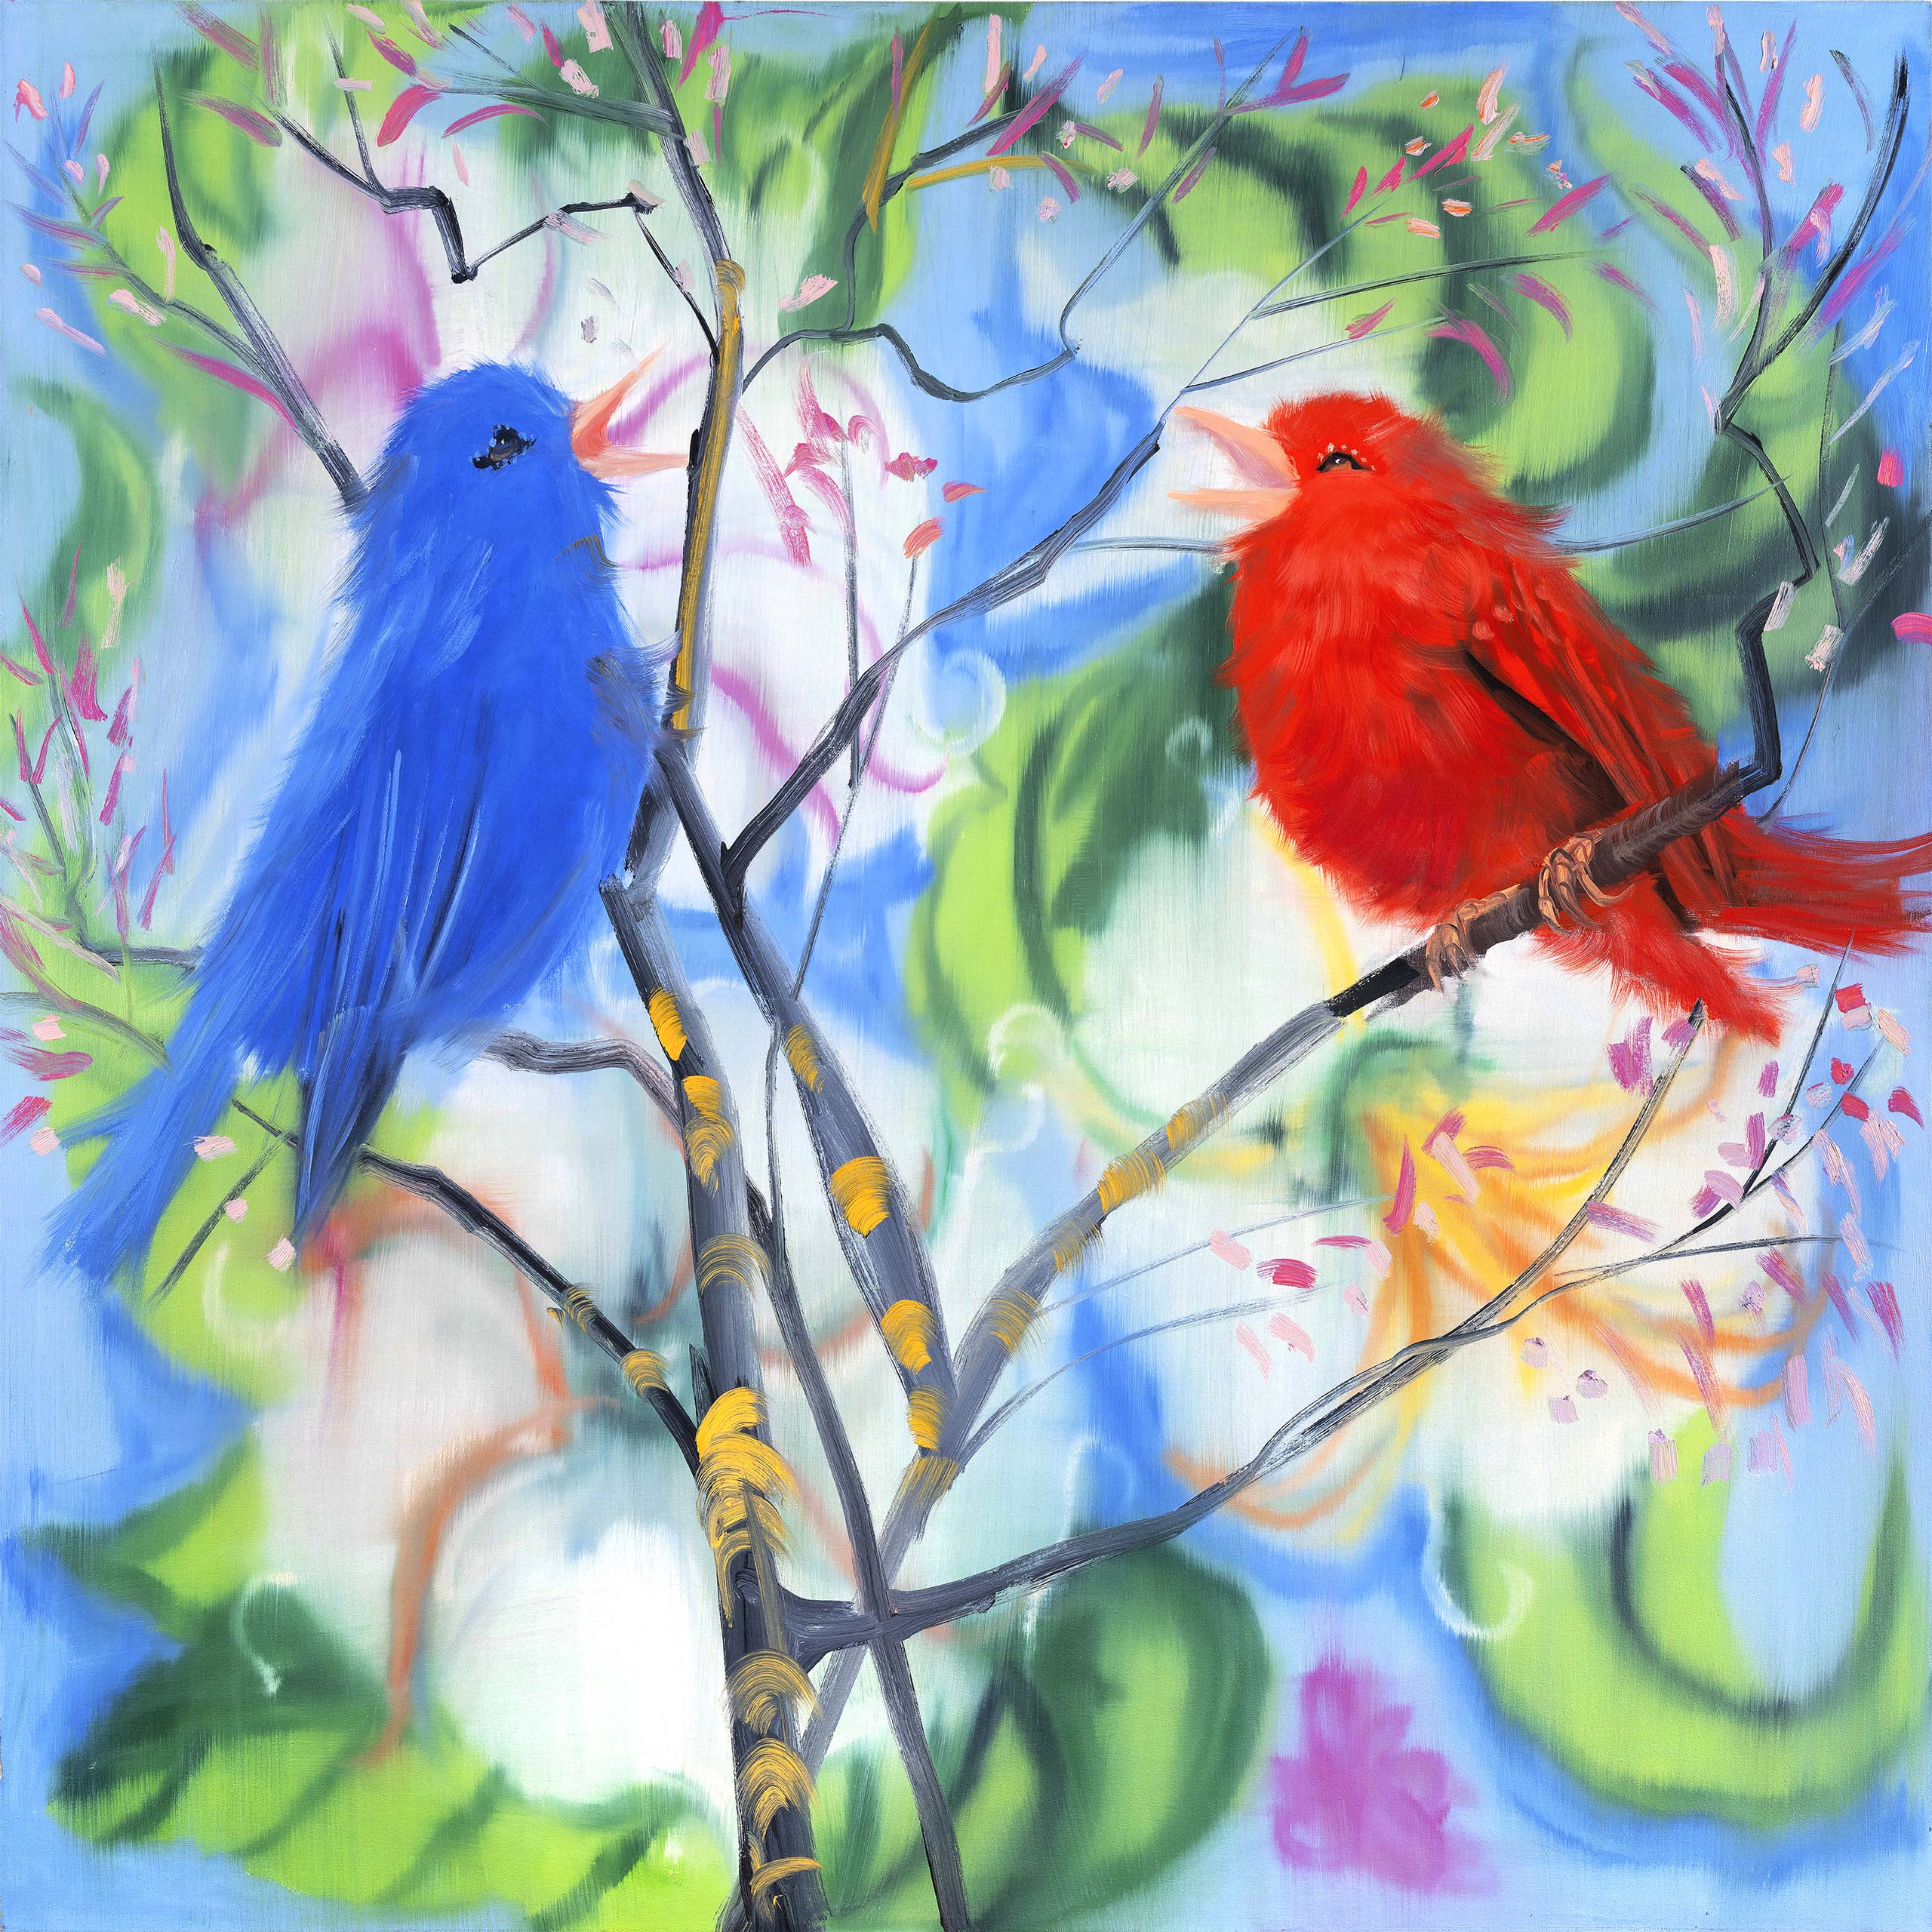 Ann Craven, Portrait of Two Birds (After Picabia)